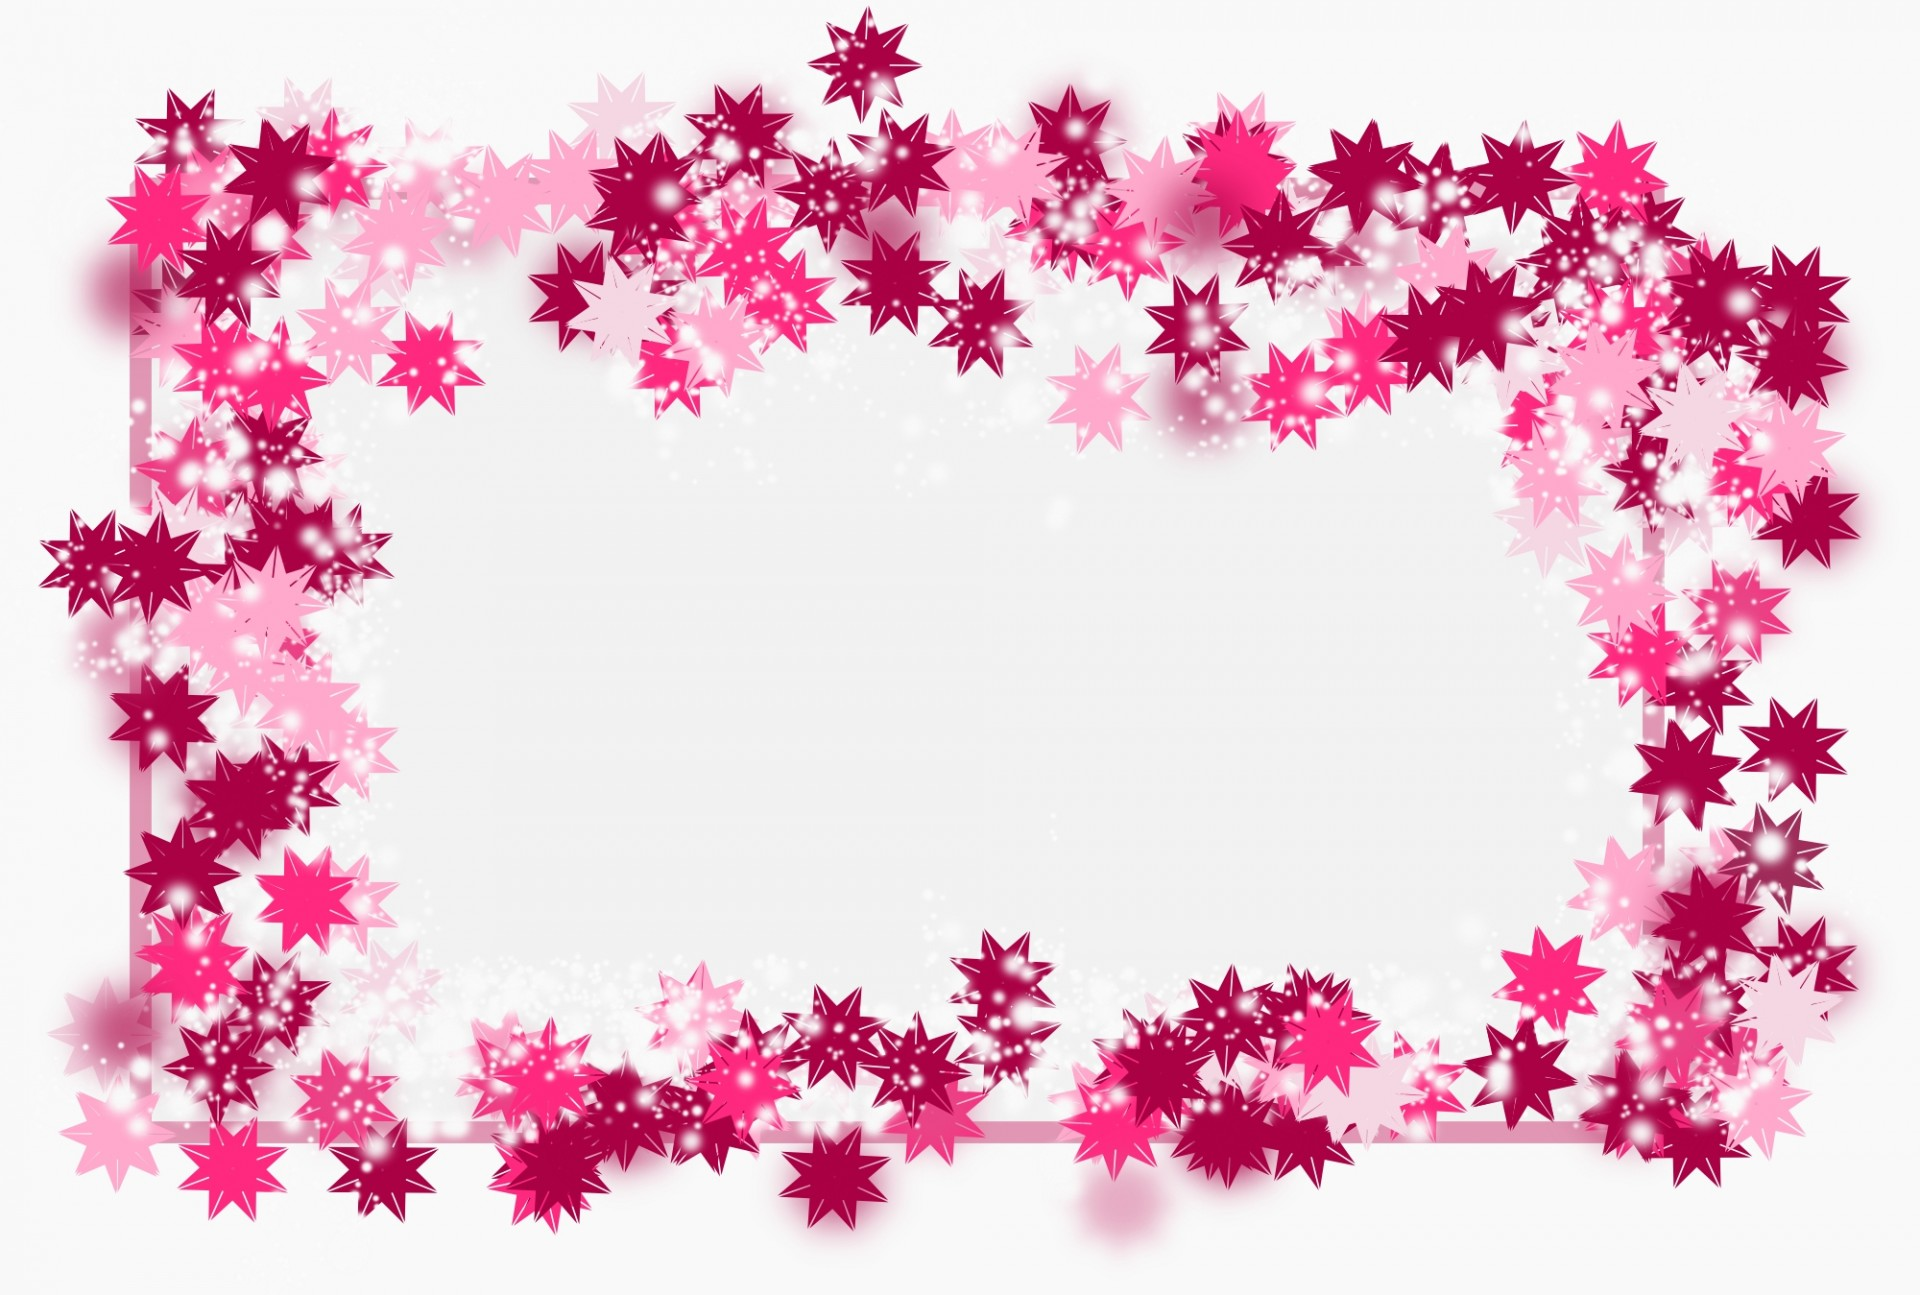 Invitation Card Edit Online Pink Flower Blank Frame Free Stock Photo - Public Domain